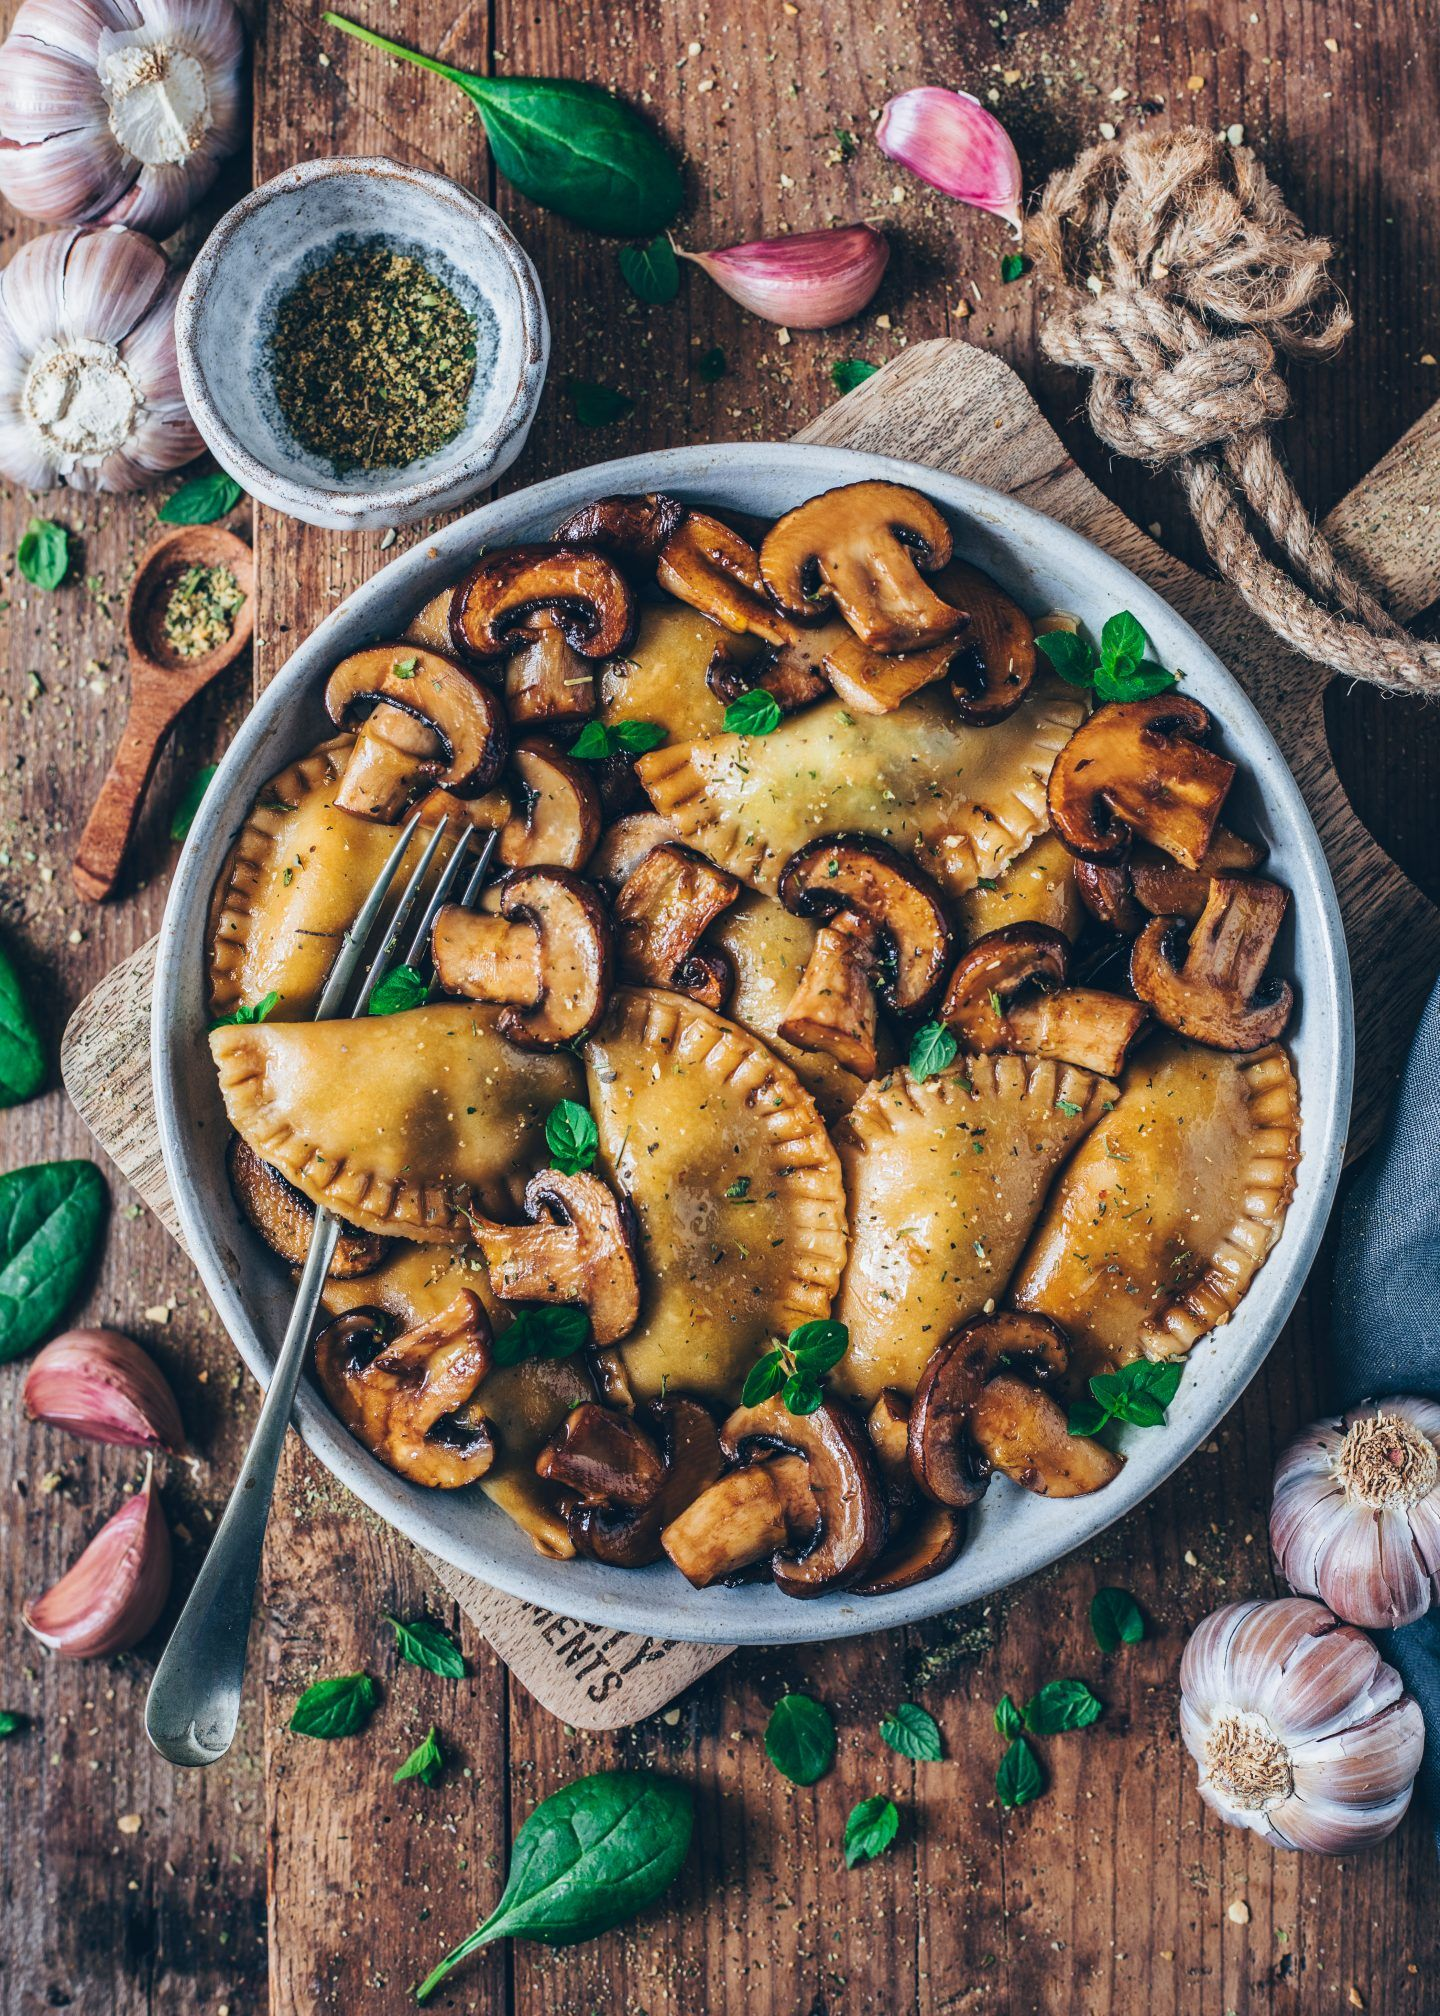 Spinach Ravioli With Mushrooms Vegan